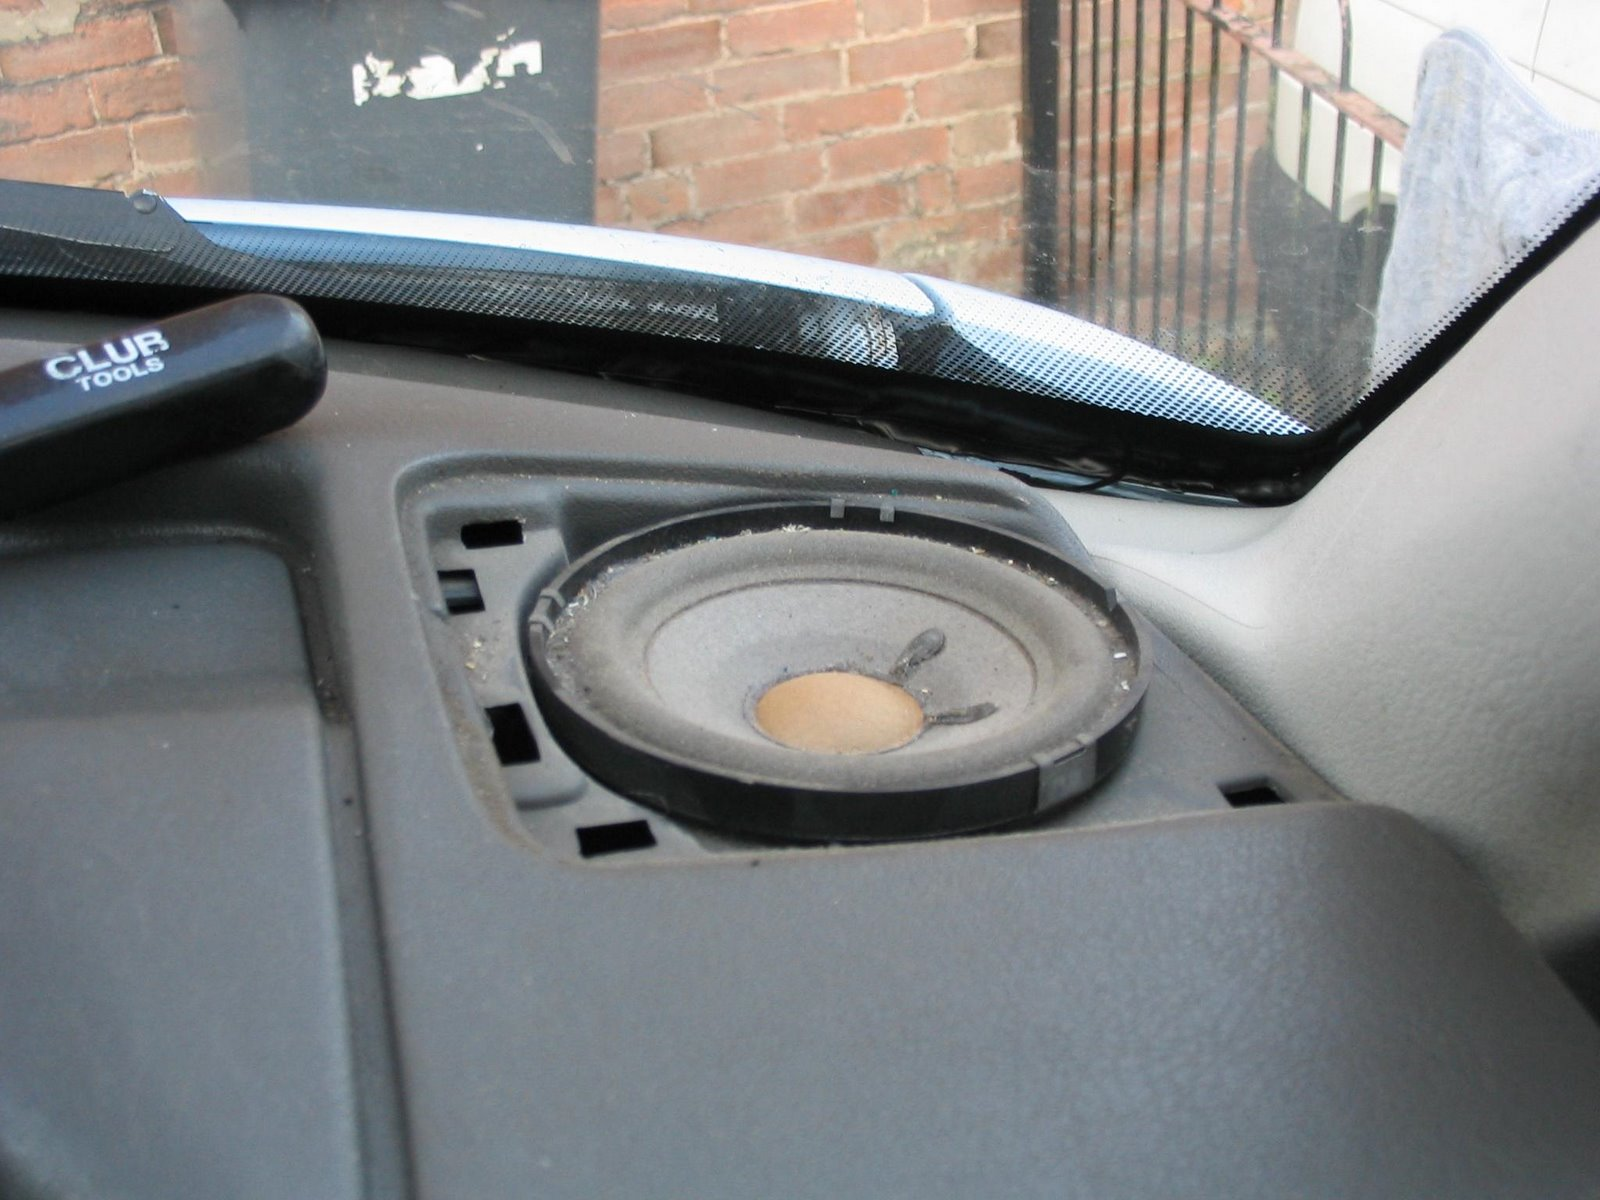 vw transporter t4 syncro camper conversion replaced headunit and speakers